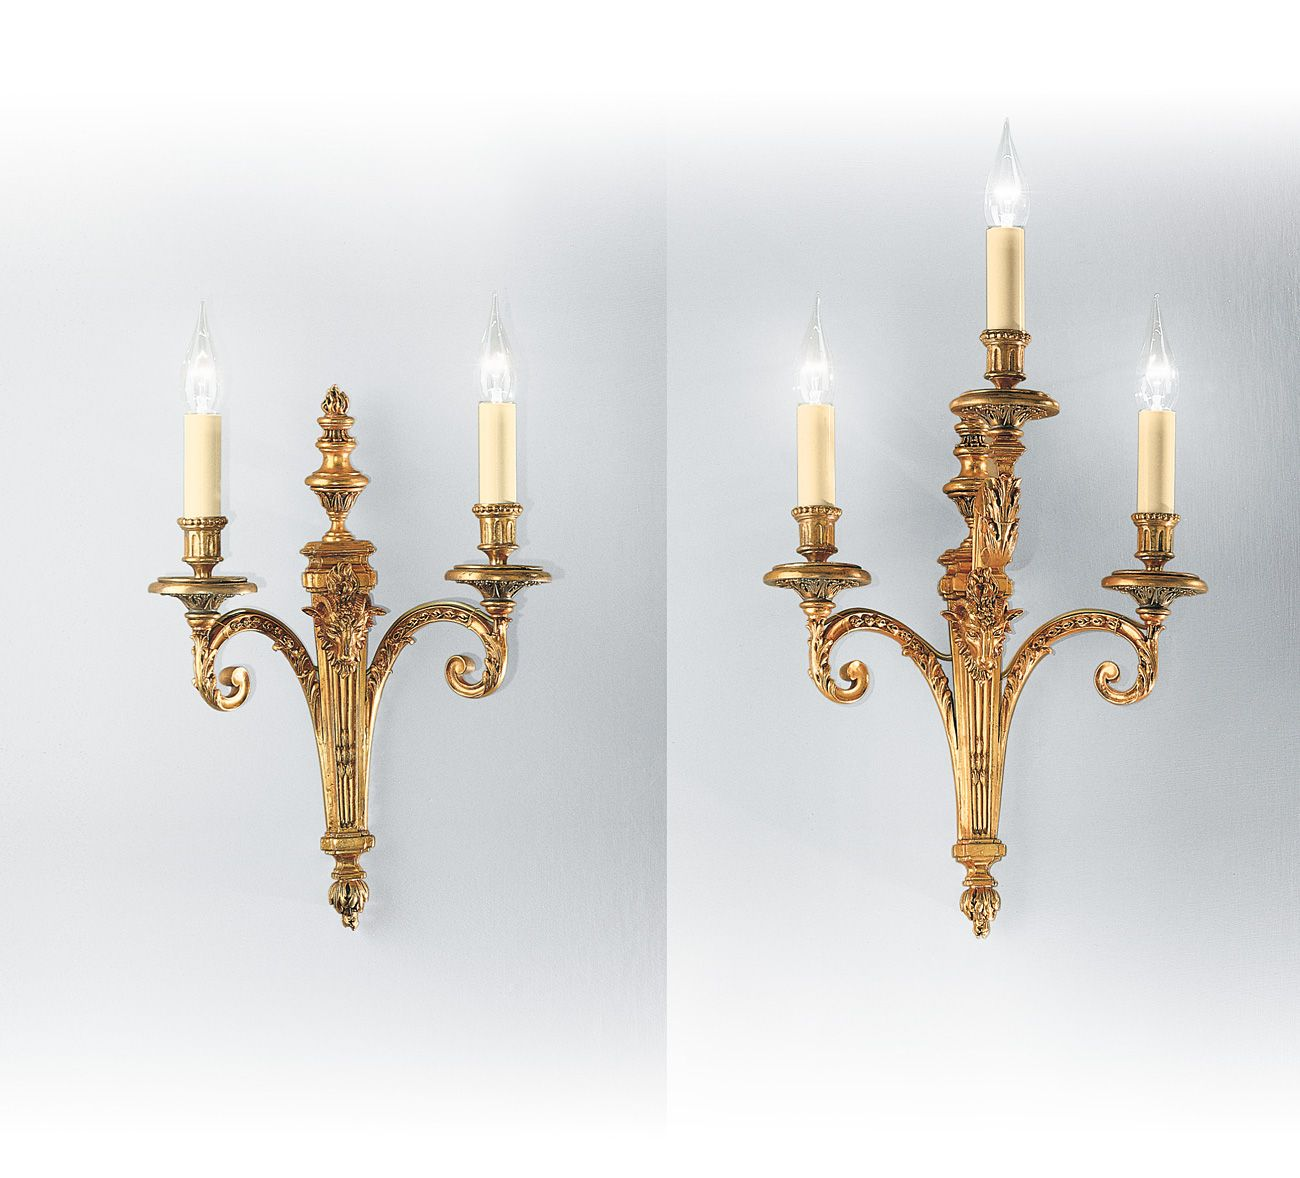 Palace 2 light sconce and a 3 light sconce pinterest palace 2 light sconce and a 3 light sconce aloadofball Image collections